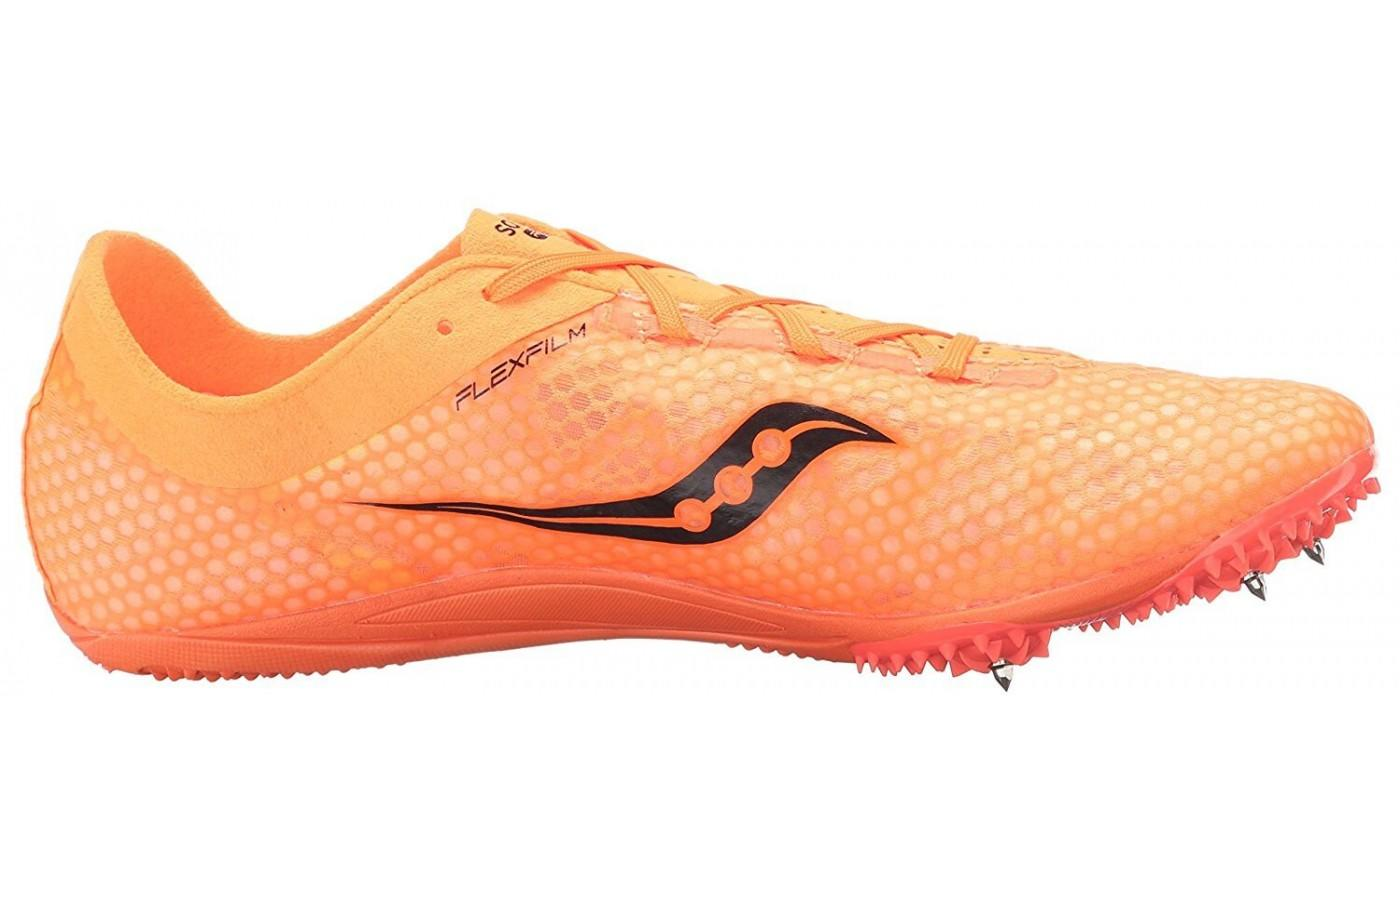 the Saucony Endorphin is the lightest track spike on the market